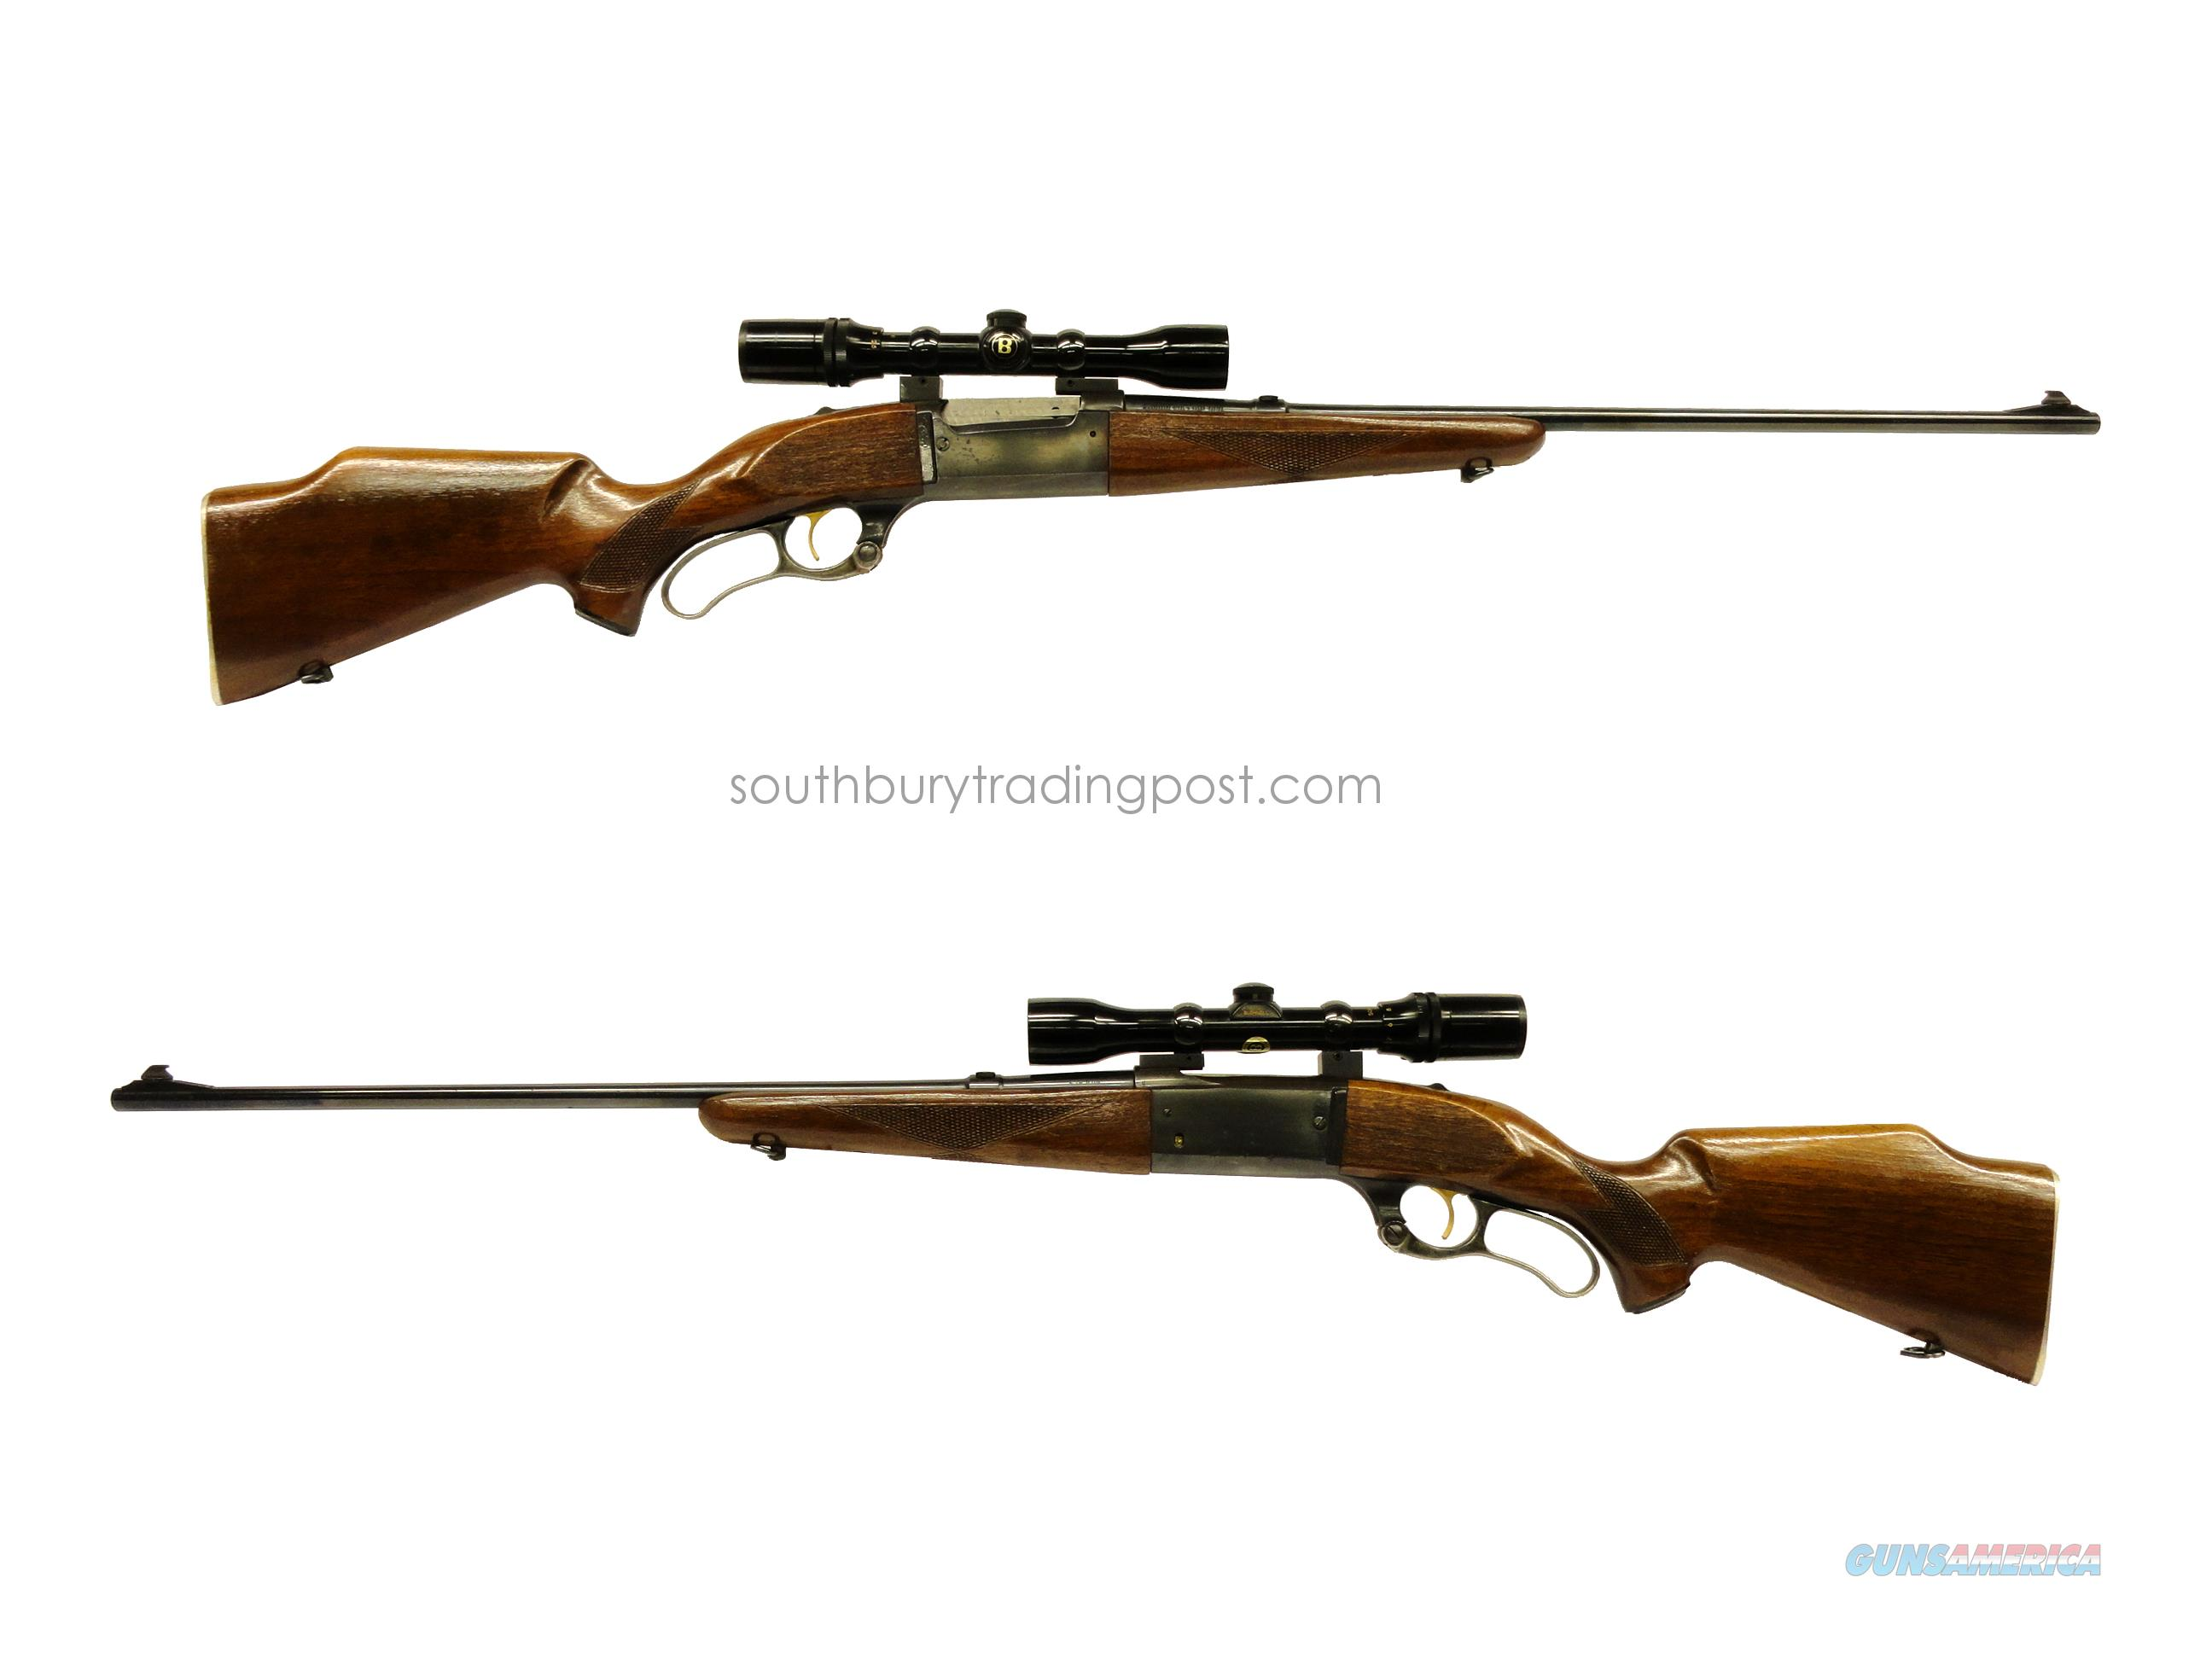 Savage 99M (99F) .243 Winchester Lever-Action Rifle - Bushnell Scope-Chief VI scope included!  Guns > Rifles > Savage Rifles > Model 95/99 Family